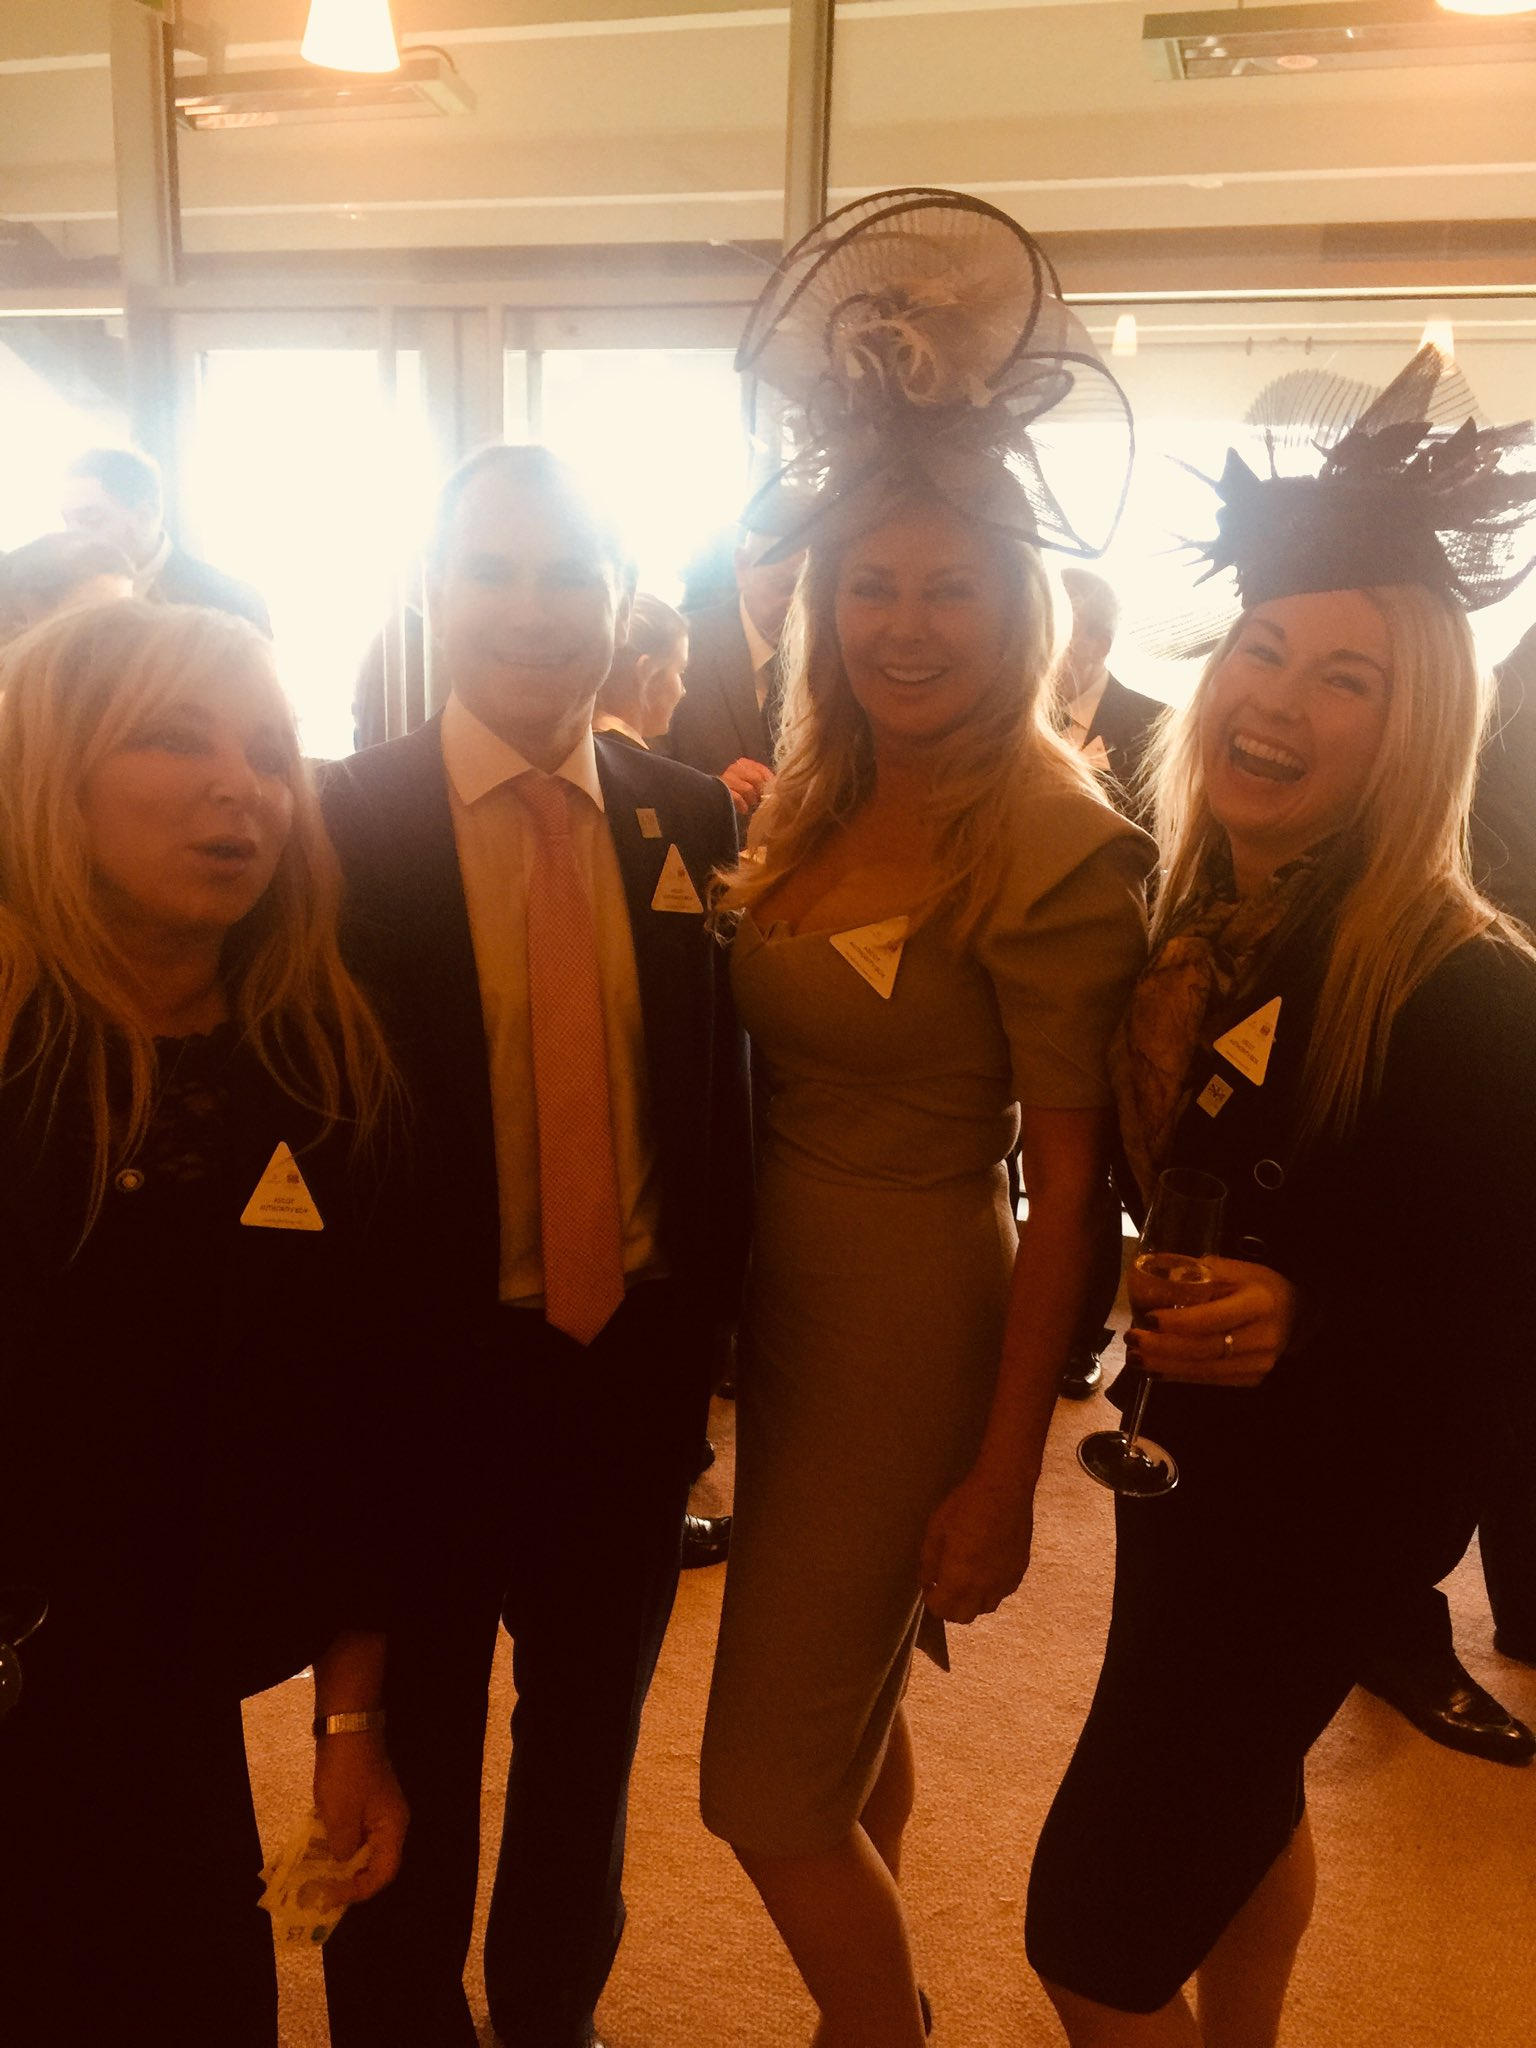 with buddies @alexinaholt @Ascot  @ChampionsSeries https://t.co/WFWg5oXWS7